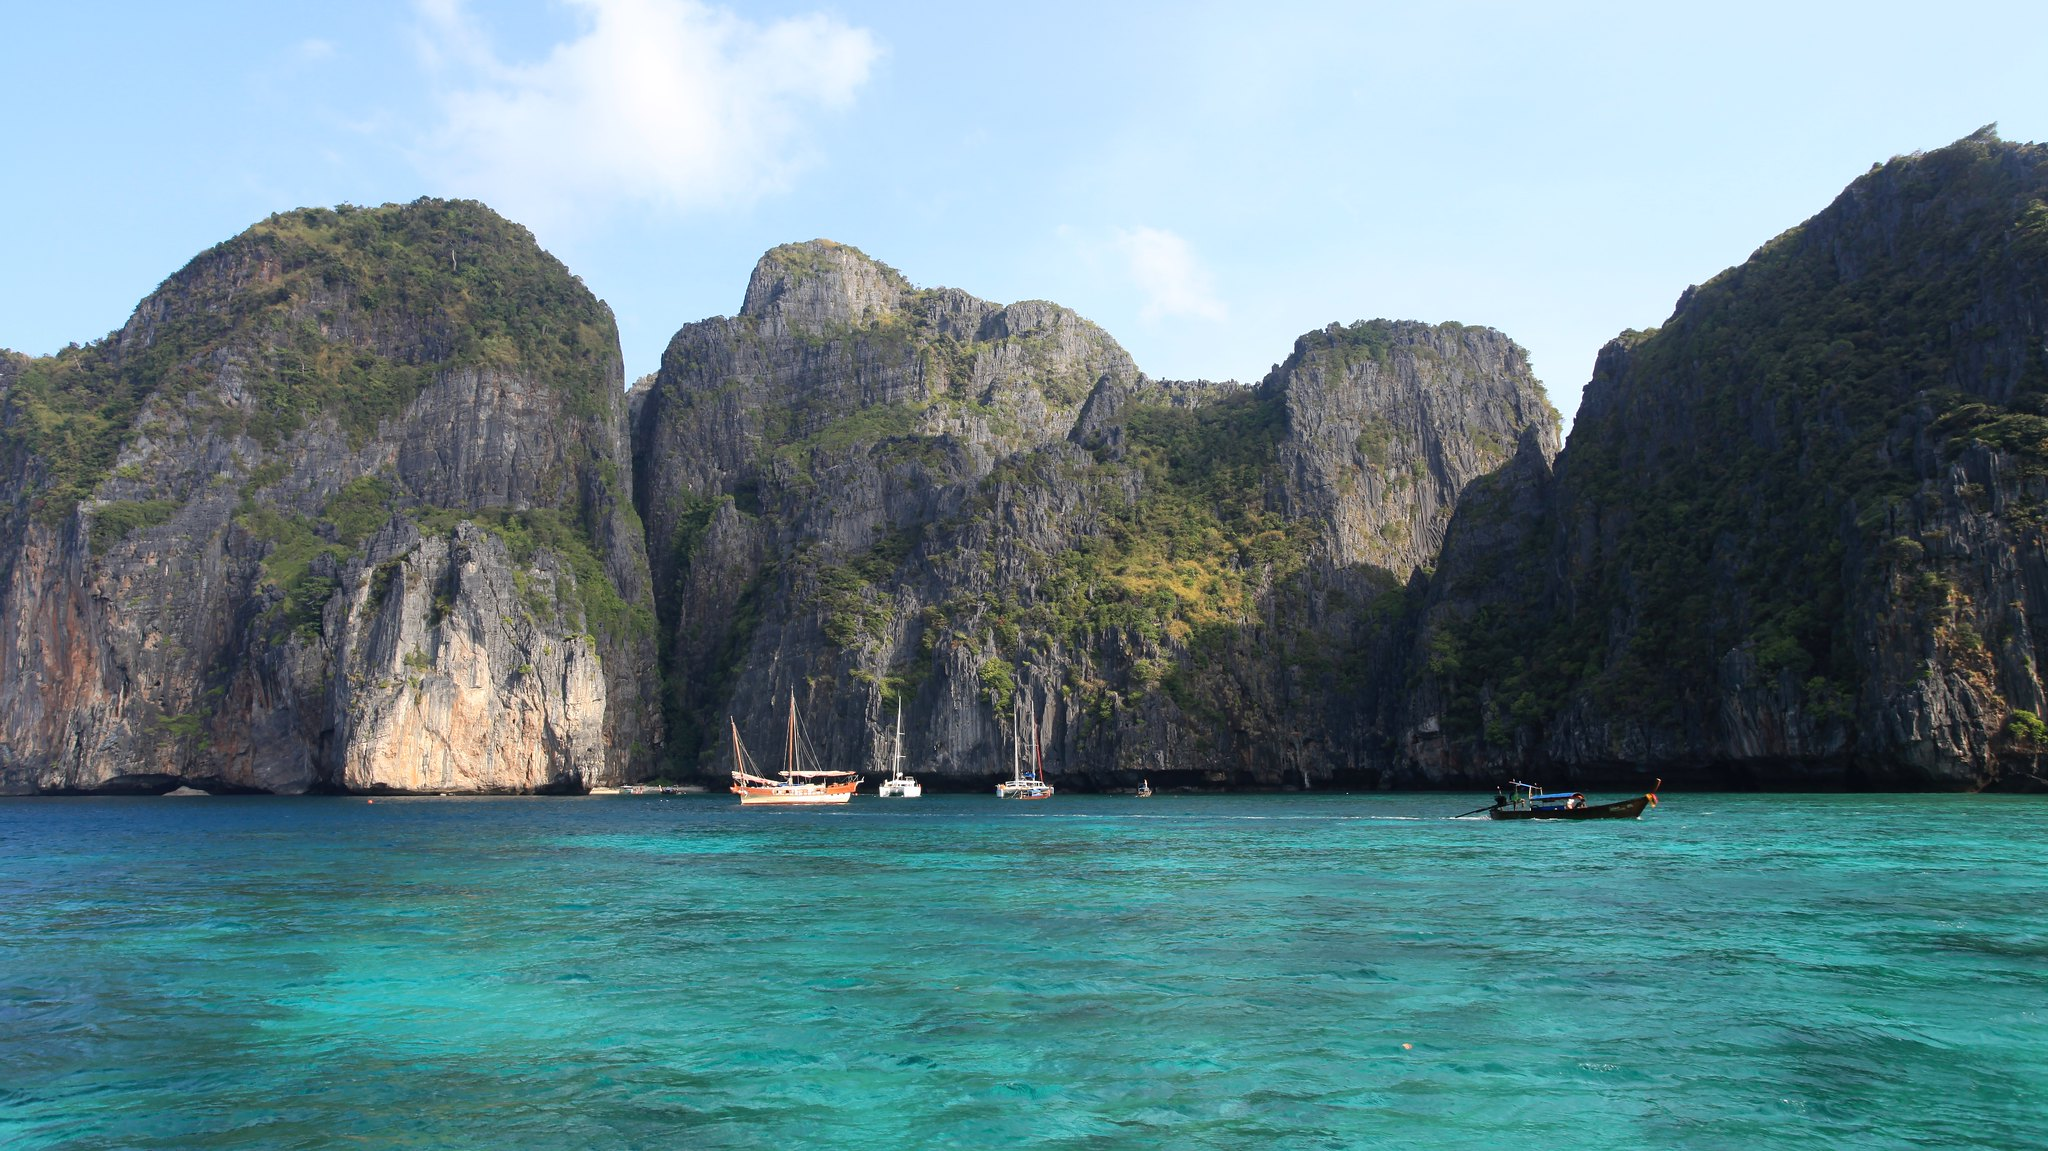 Shades of Blue in Phi Phi